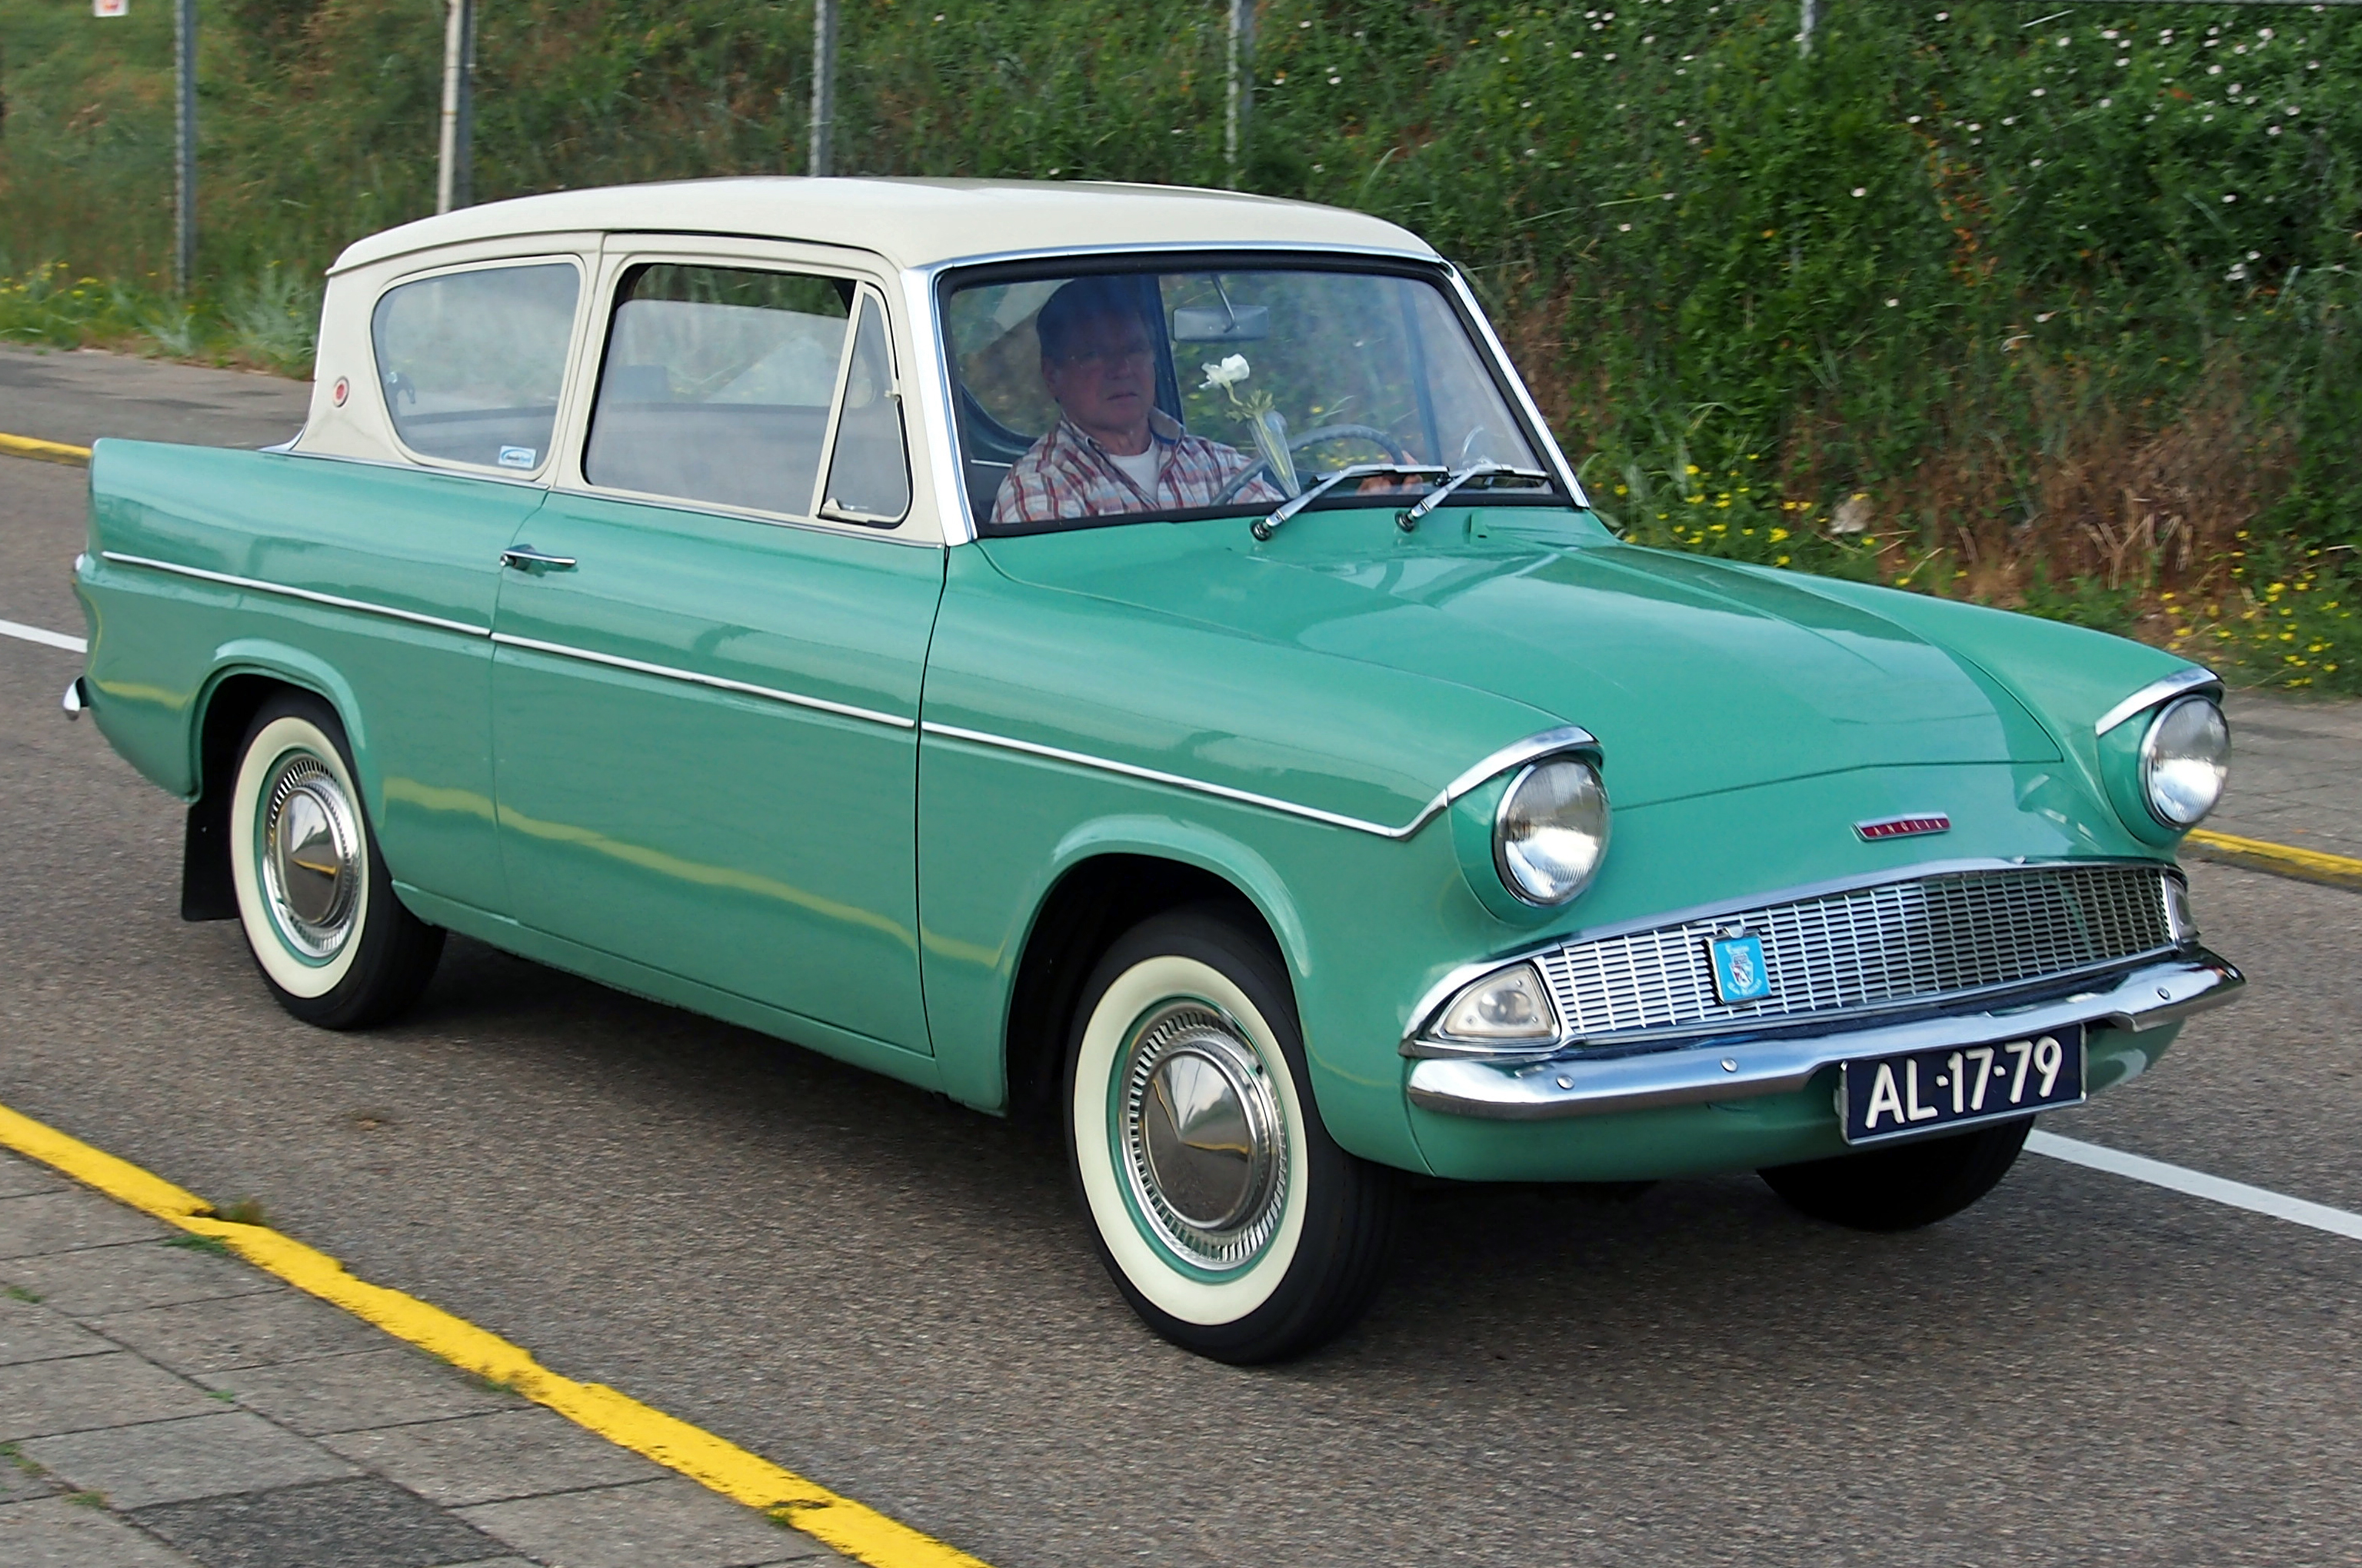 Black Modey Foreign Car Wallpaper Ford Anglia Wikiwand